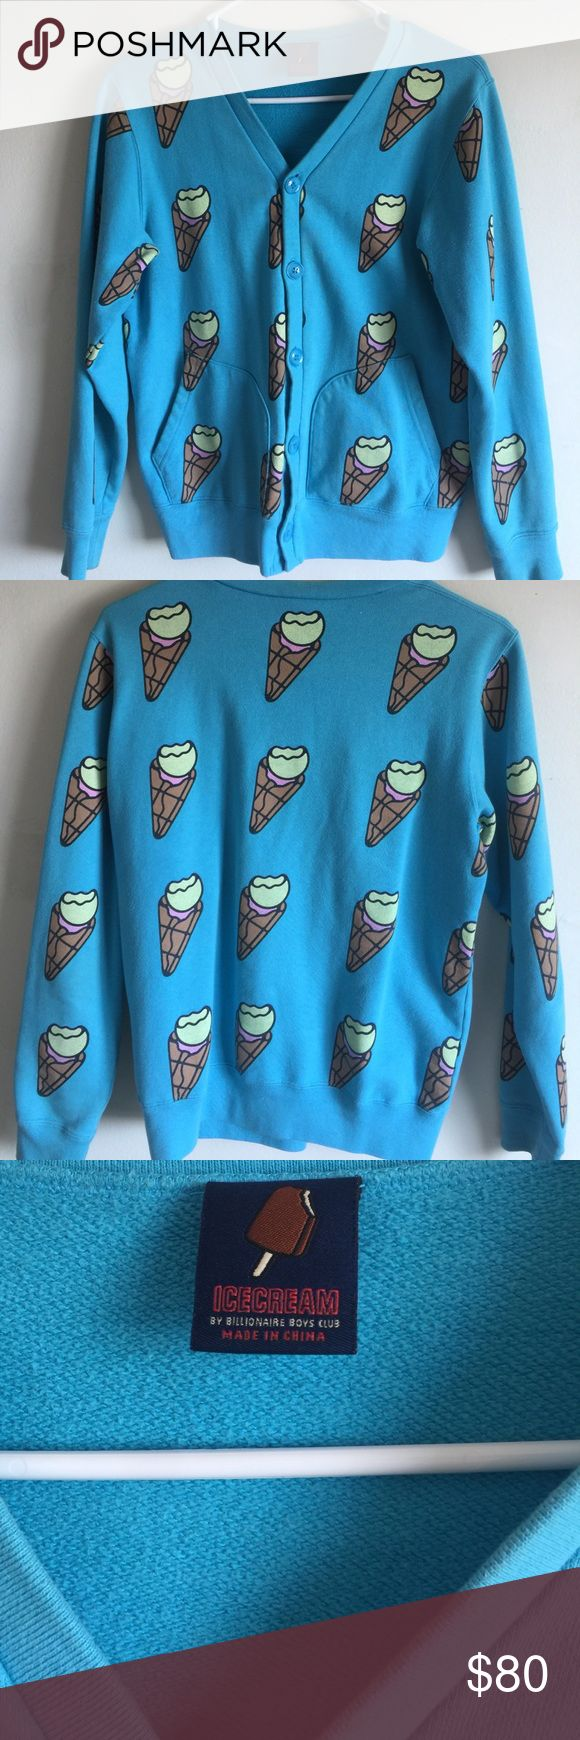 Billionaire Boys Club/Ice Cream coat This piece was from 2010, you can only get this from BBC flagshop in NYC. And this Blue and Ice Cream pattern is right for summer Billionaire Boys Club Jackets & Coats Trench Coats